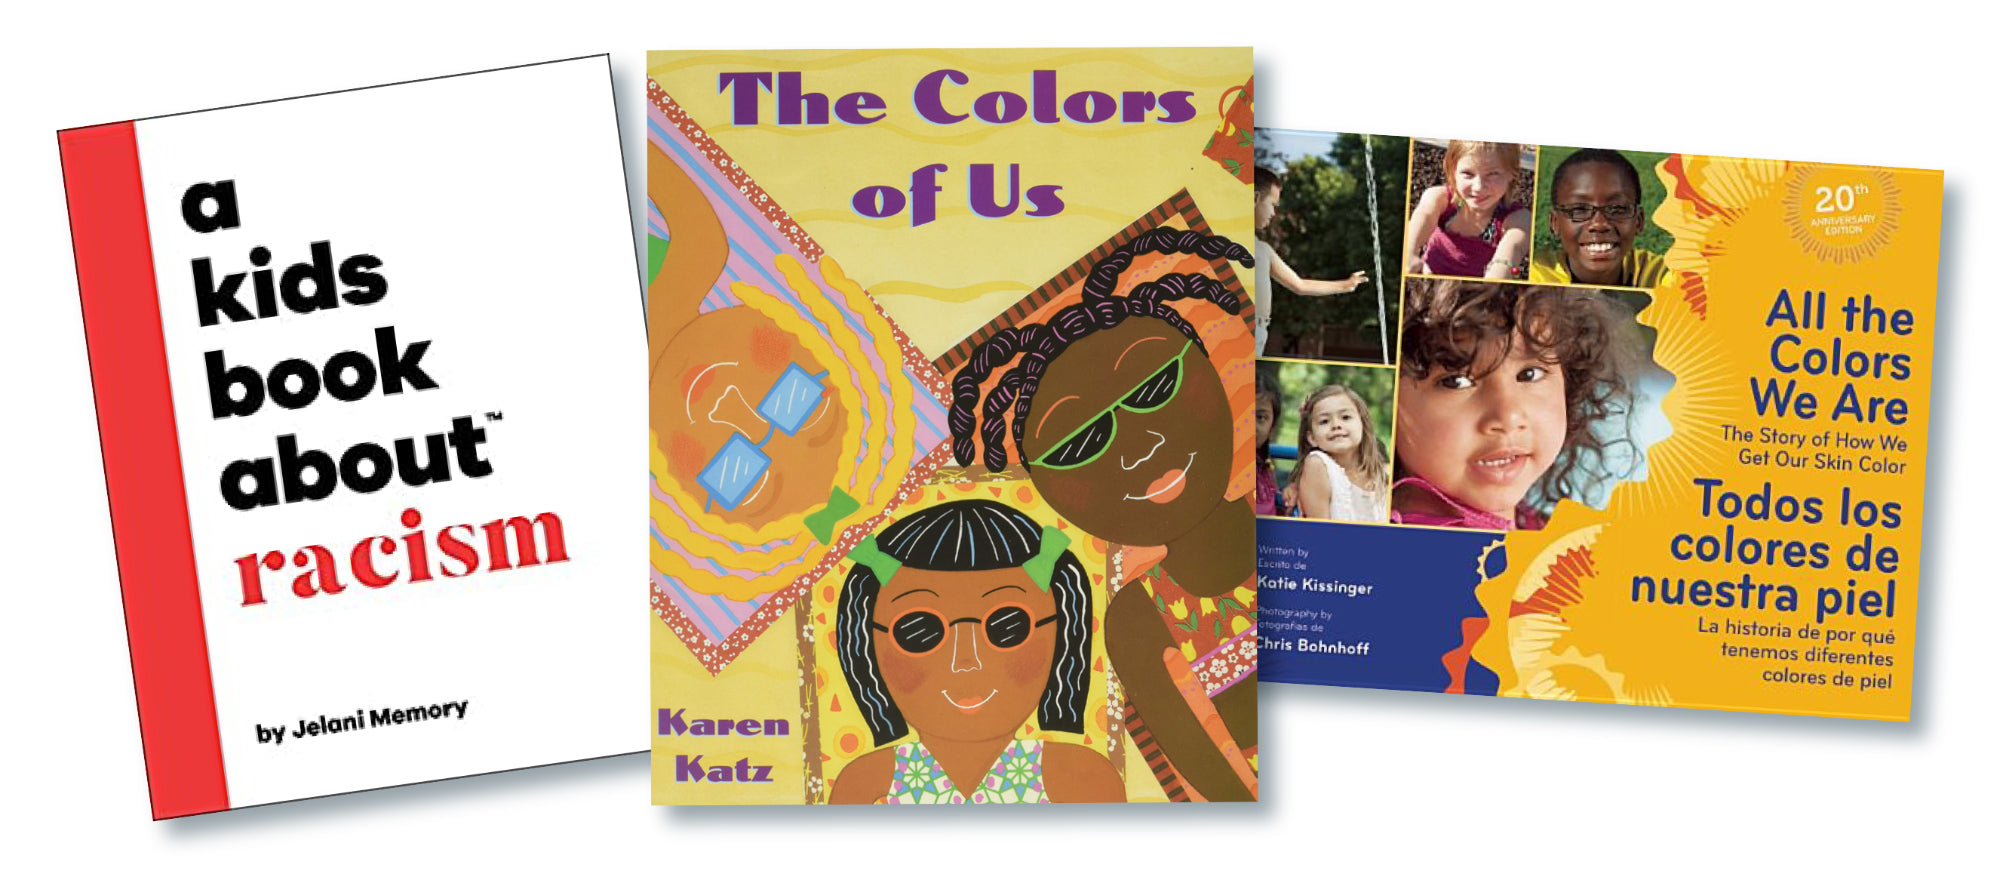 3 books for children about race